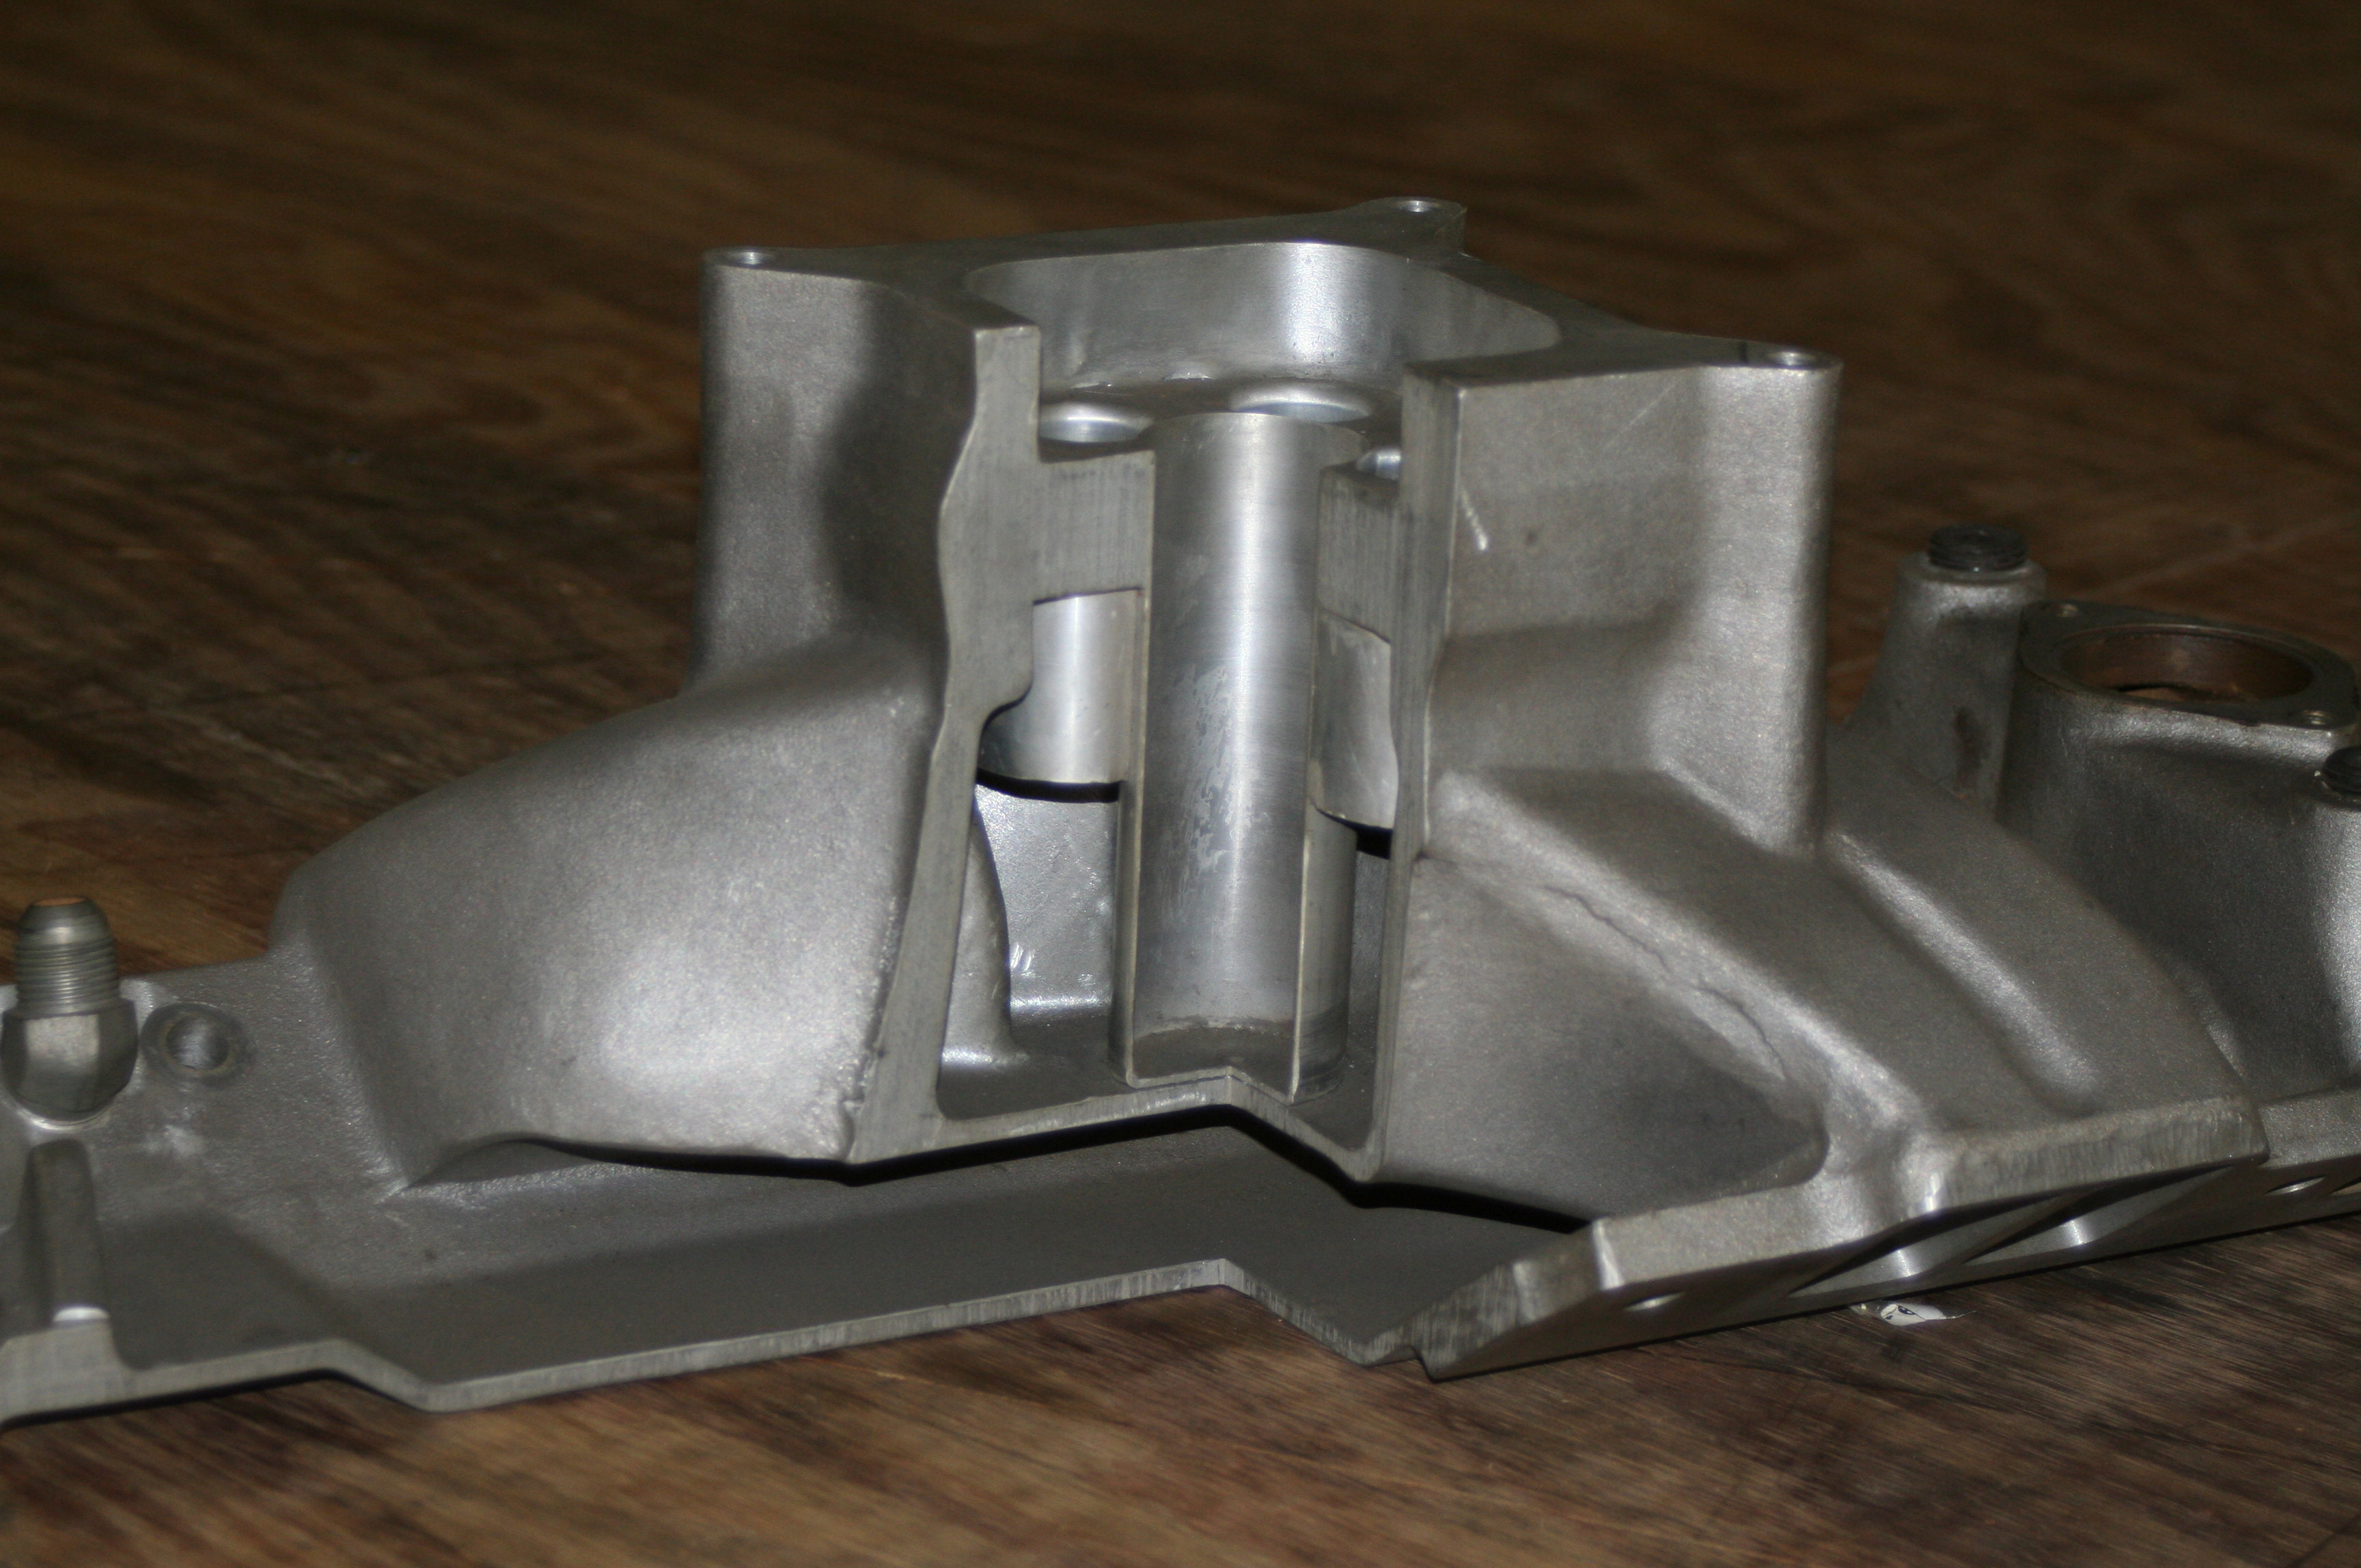 Keith Dorton's restrictor plate intake manifold was something of legend in the '90s and beyond. This cutaway shows some of the genius behind it.